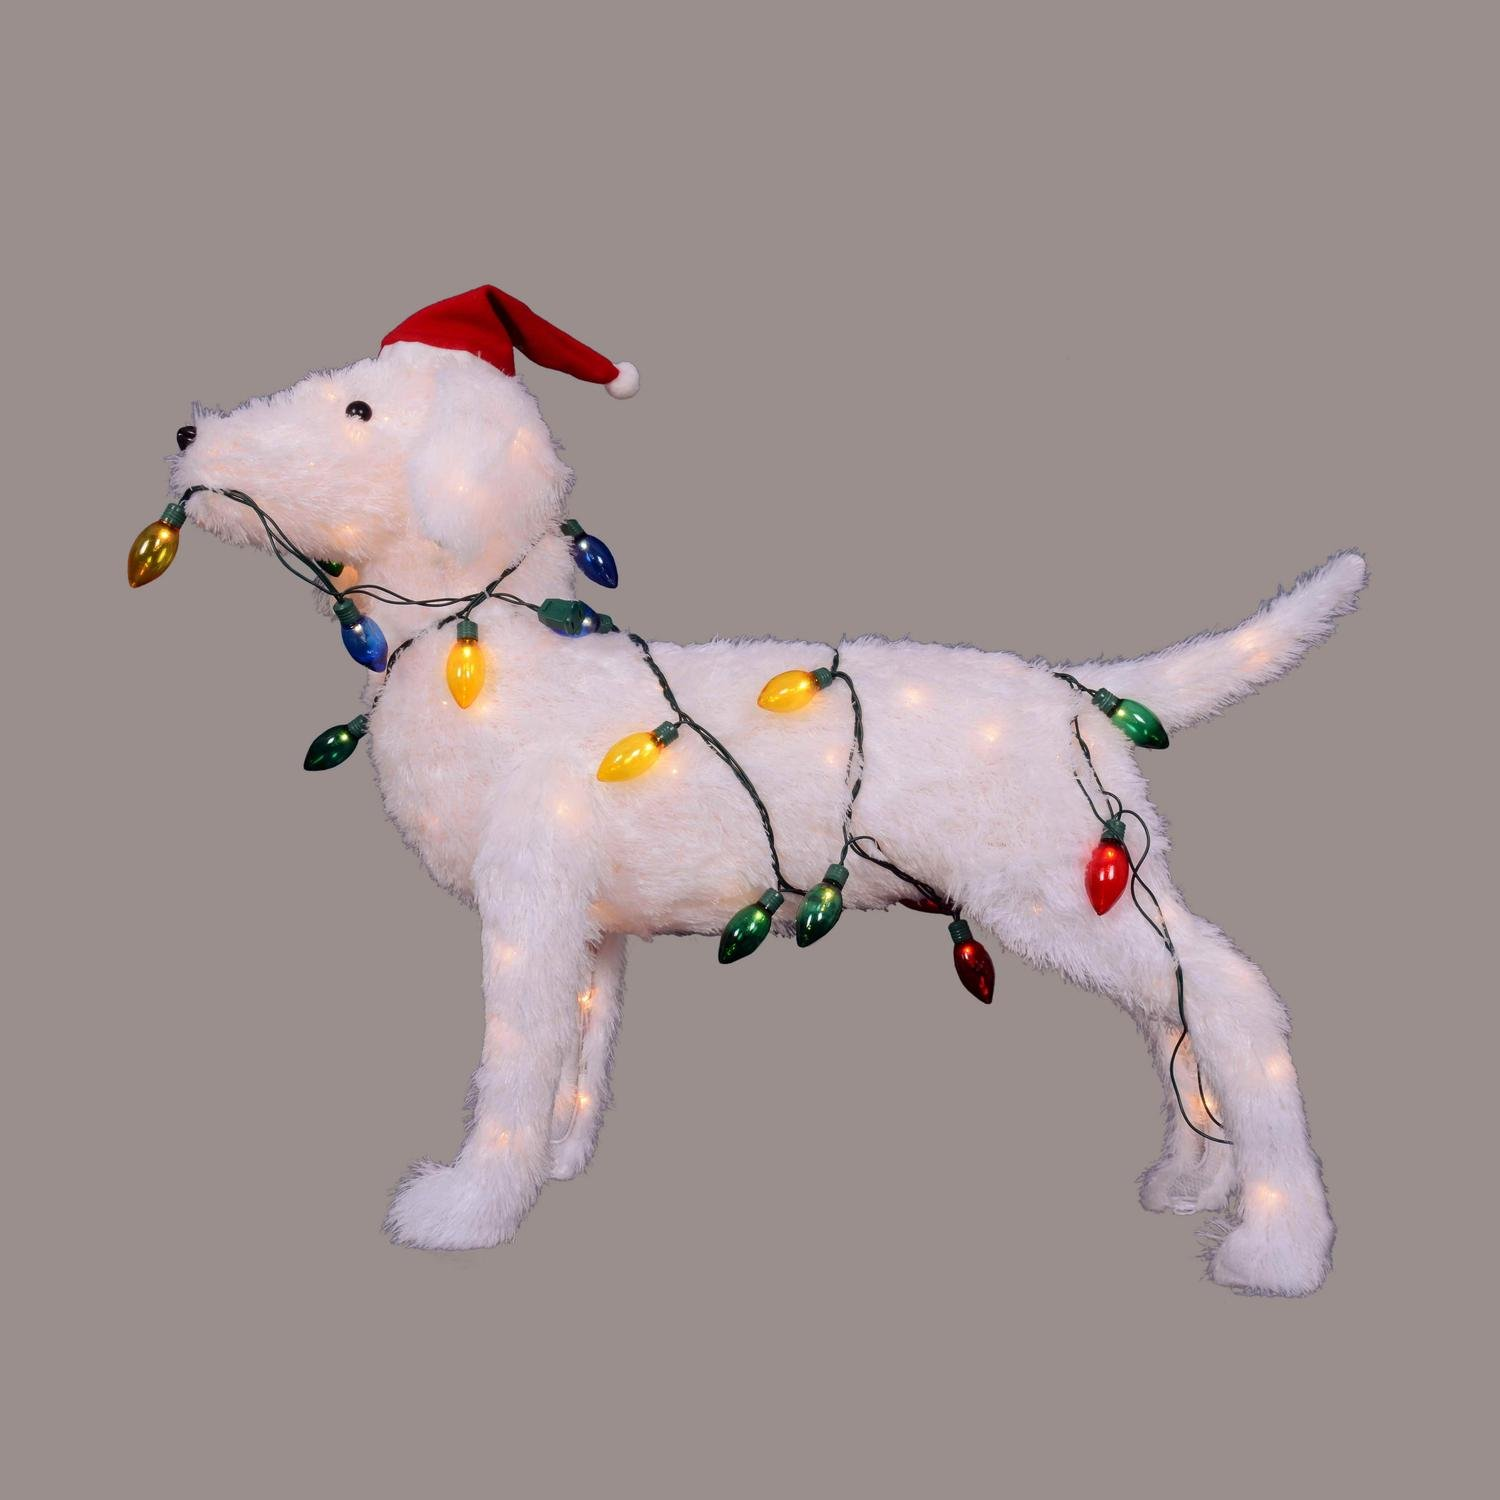 28.5'' 3D Standing Decorative Dog Lighted Christmas Yard Art Decoration by Northlight